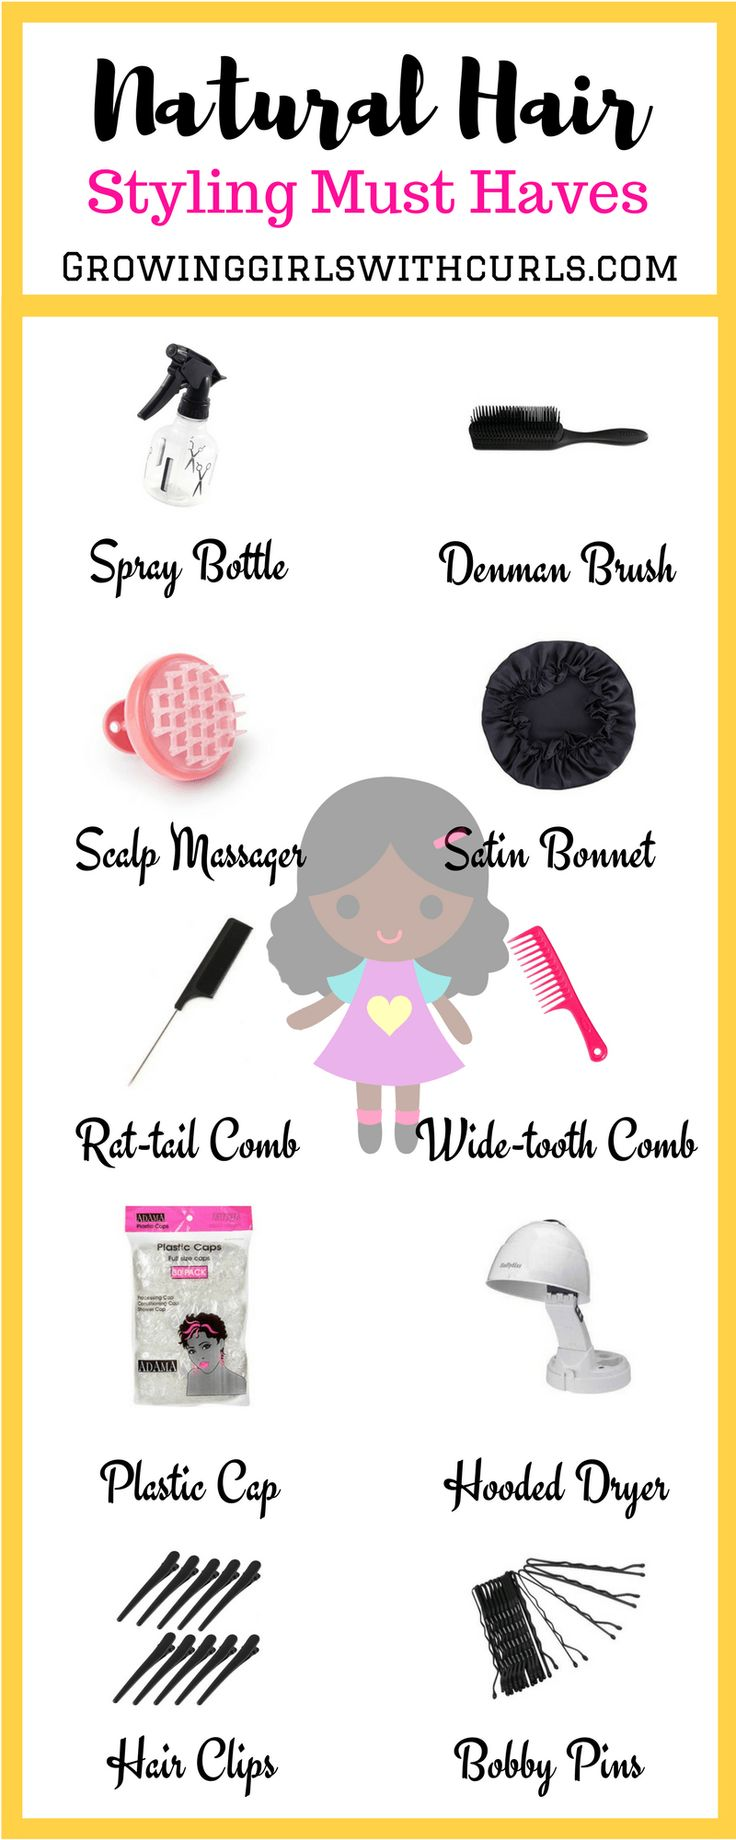 Natural hair styling must haves for beginner naturalistas.